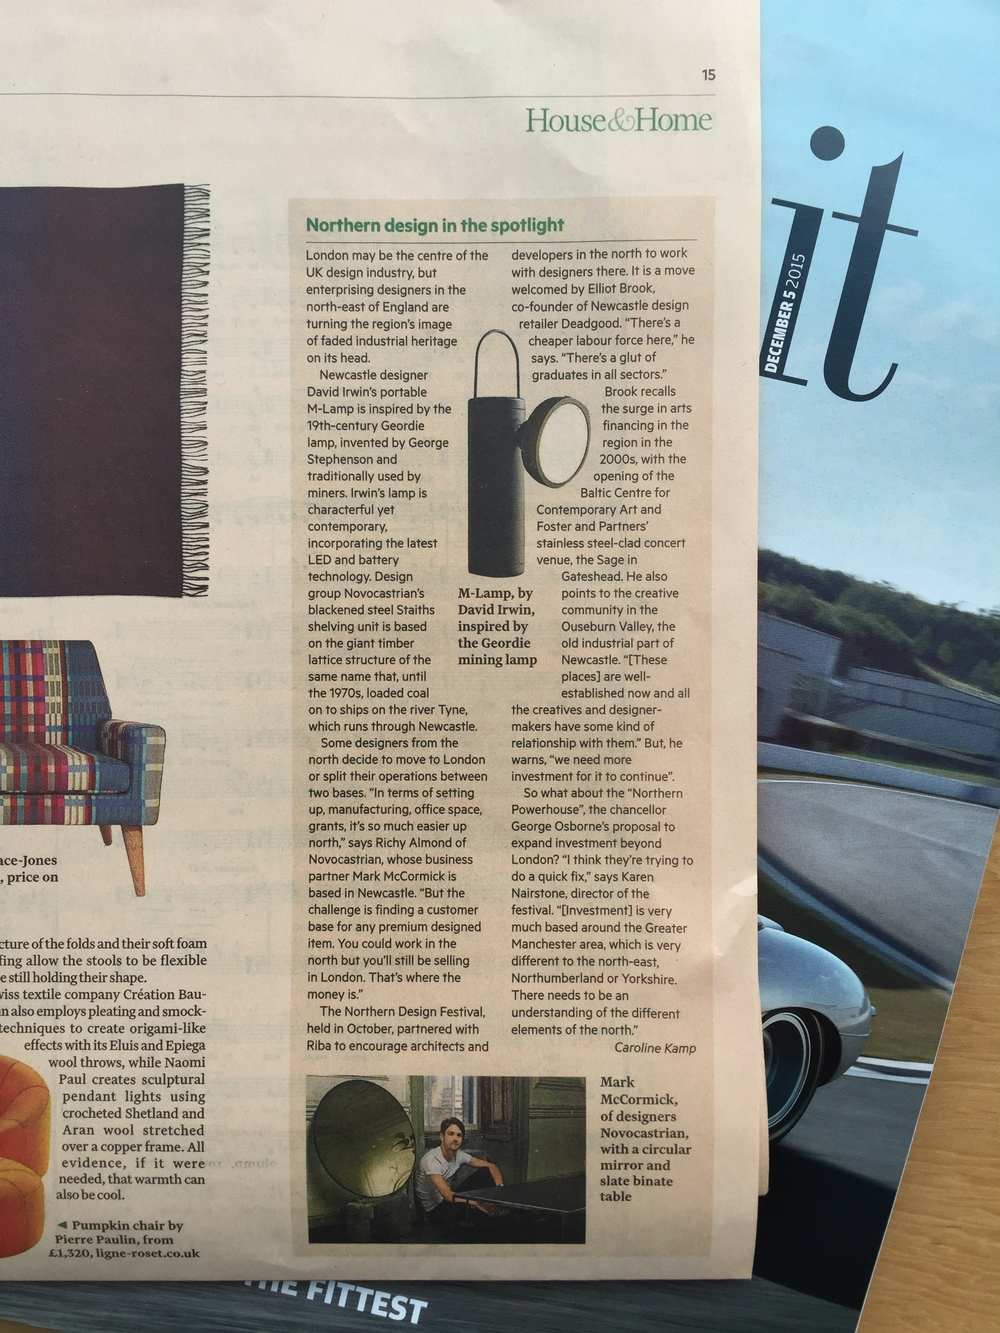 I travelled to Newcastle for this piece about the  Northern Design Festival  for the FT's House & Home section. There are some great designers producing interesting furniture in the north of England - and it's a lot cheaper to set themselves up there.